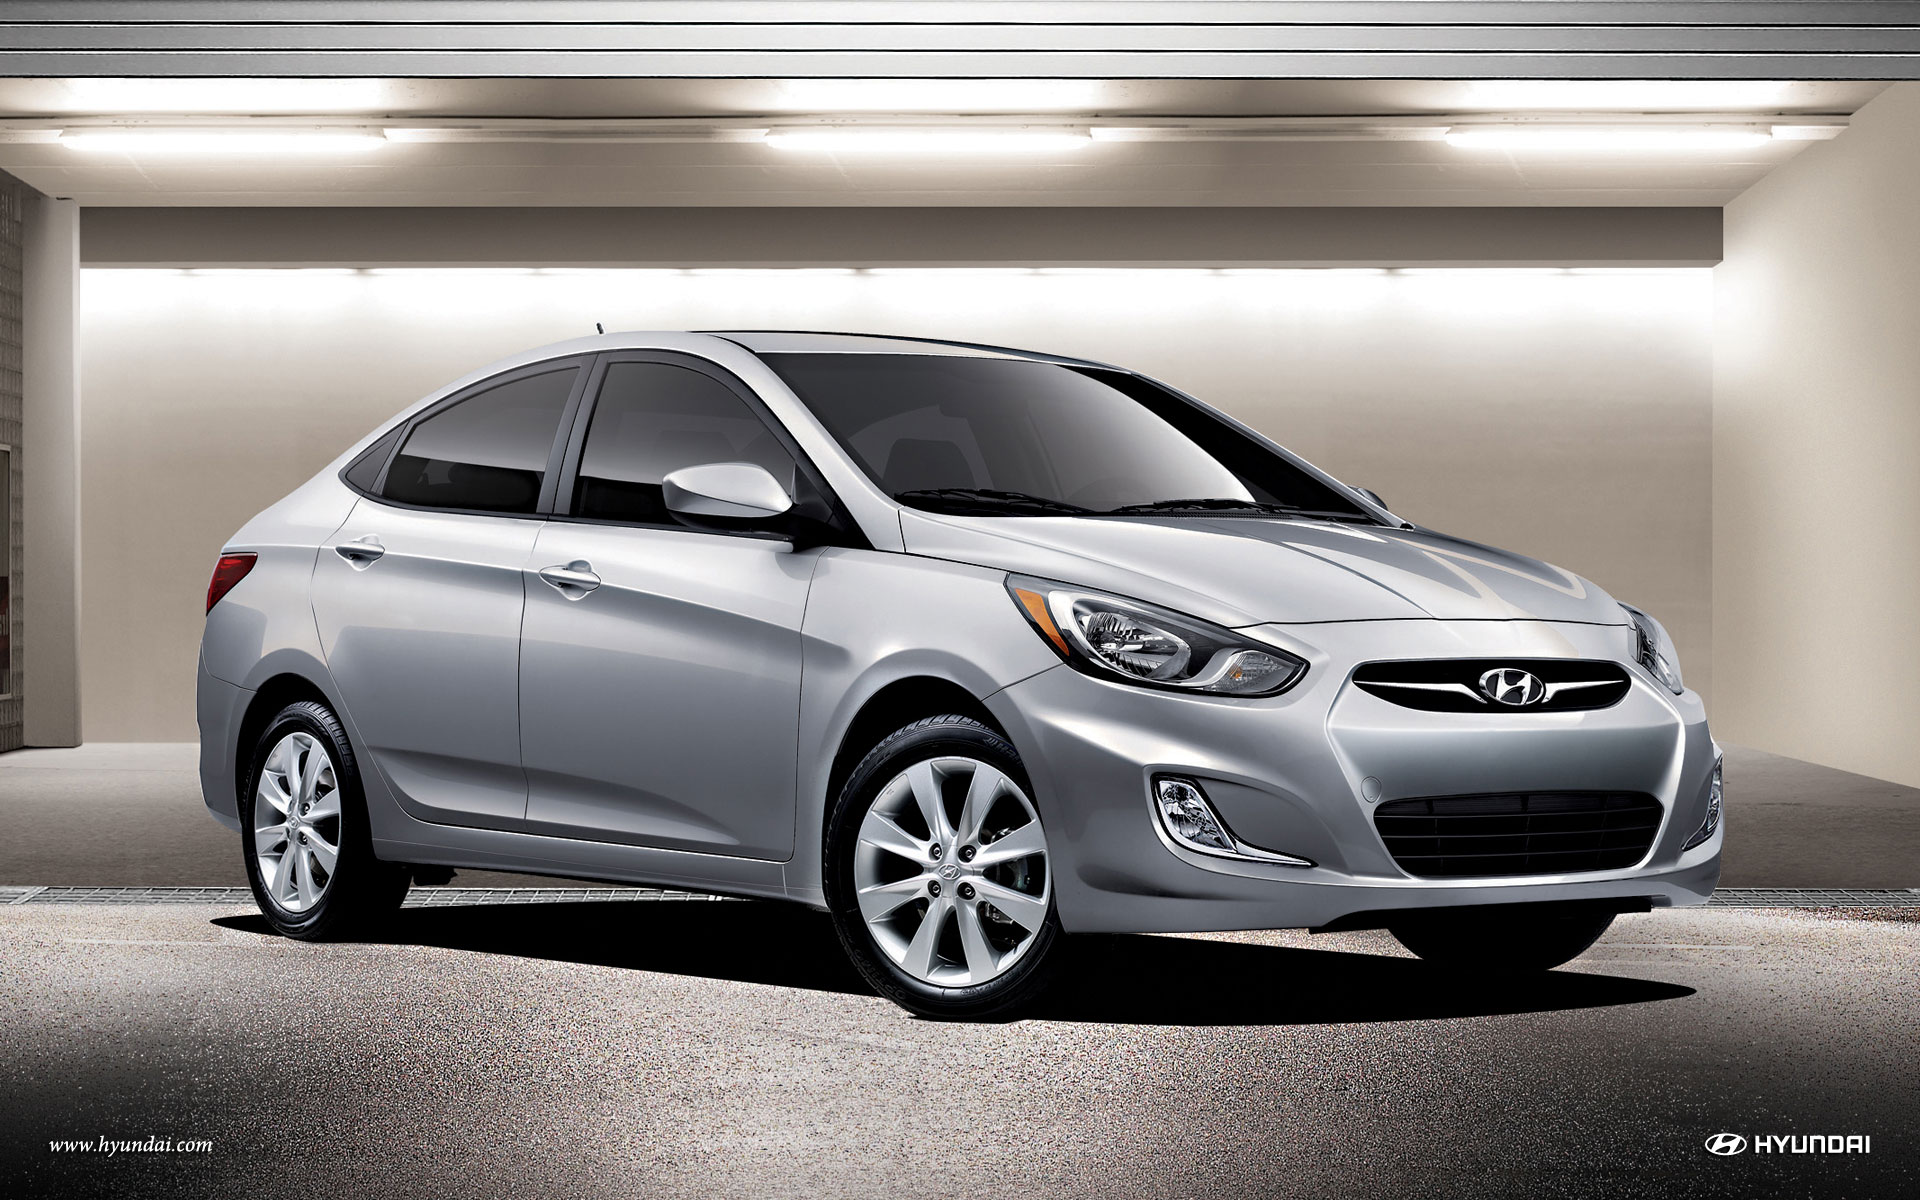 2013 Hyundai Accent Review, Ratings, Specs, Prices, and ...